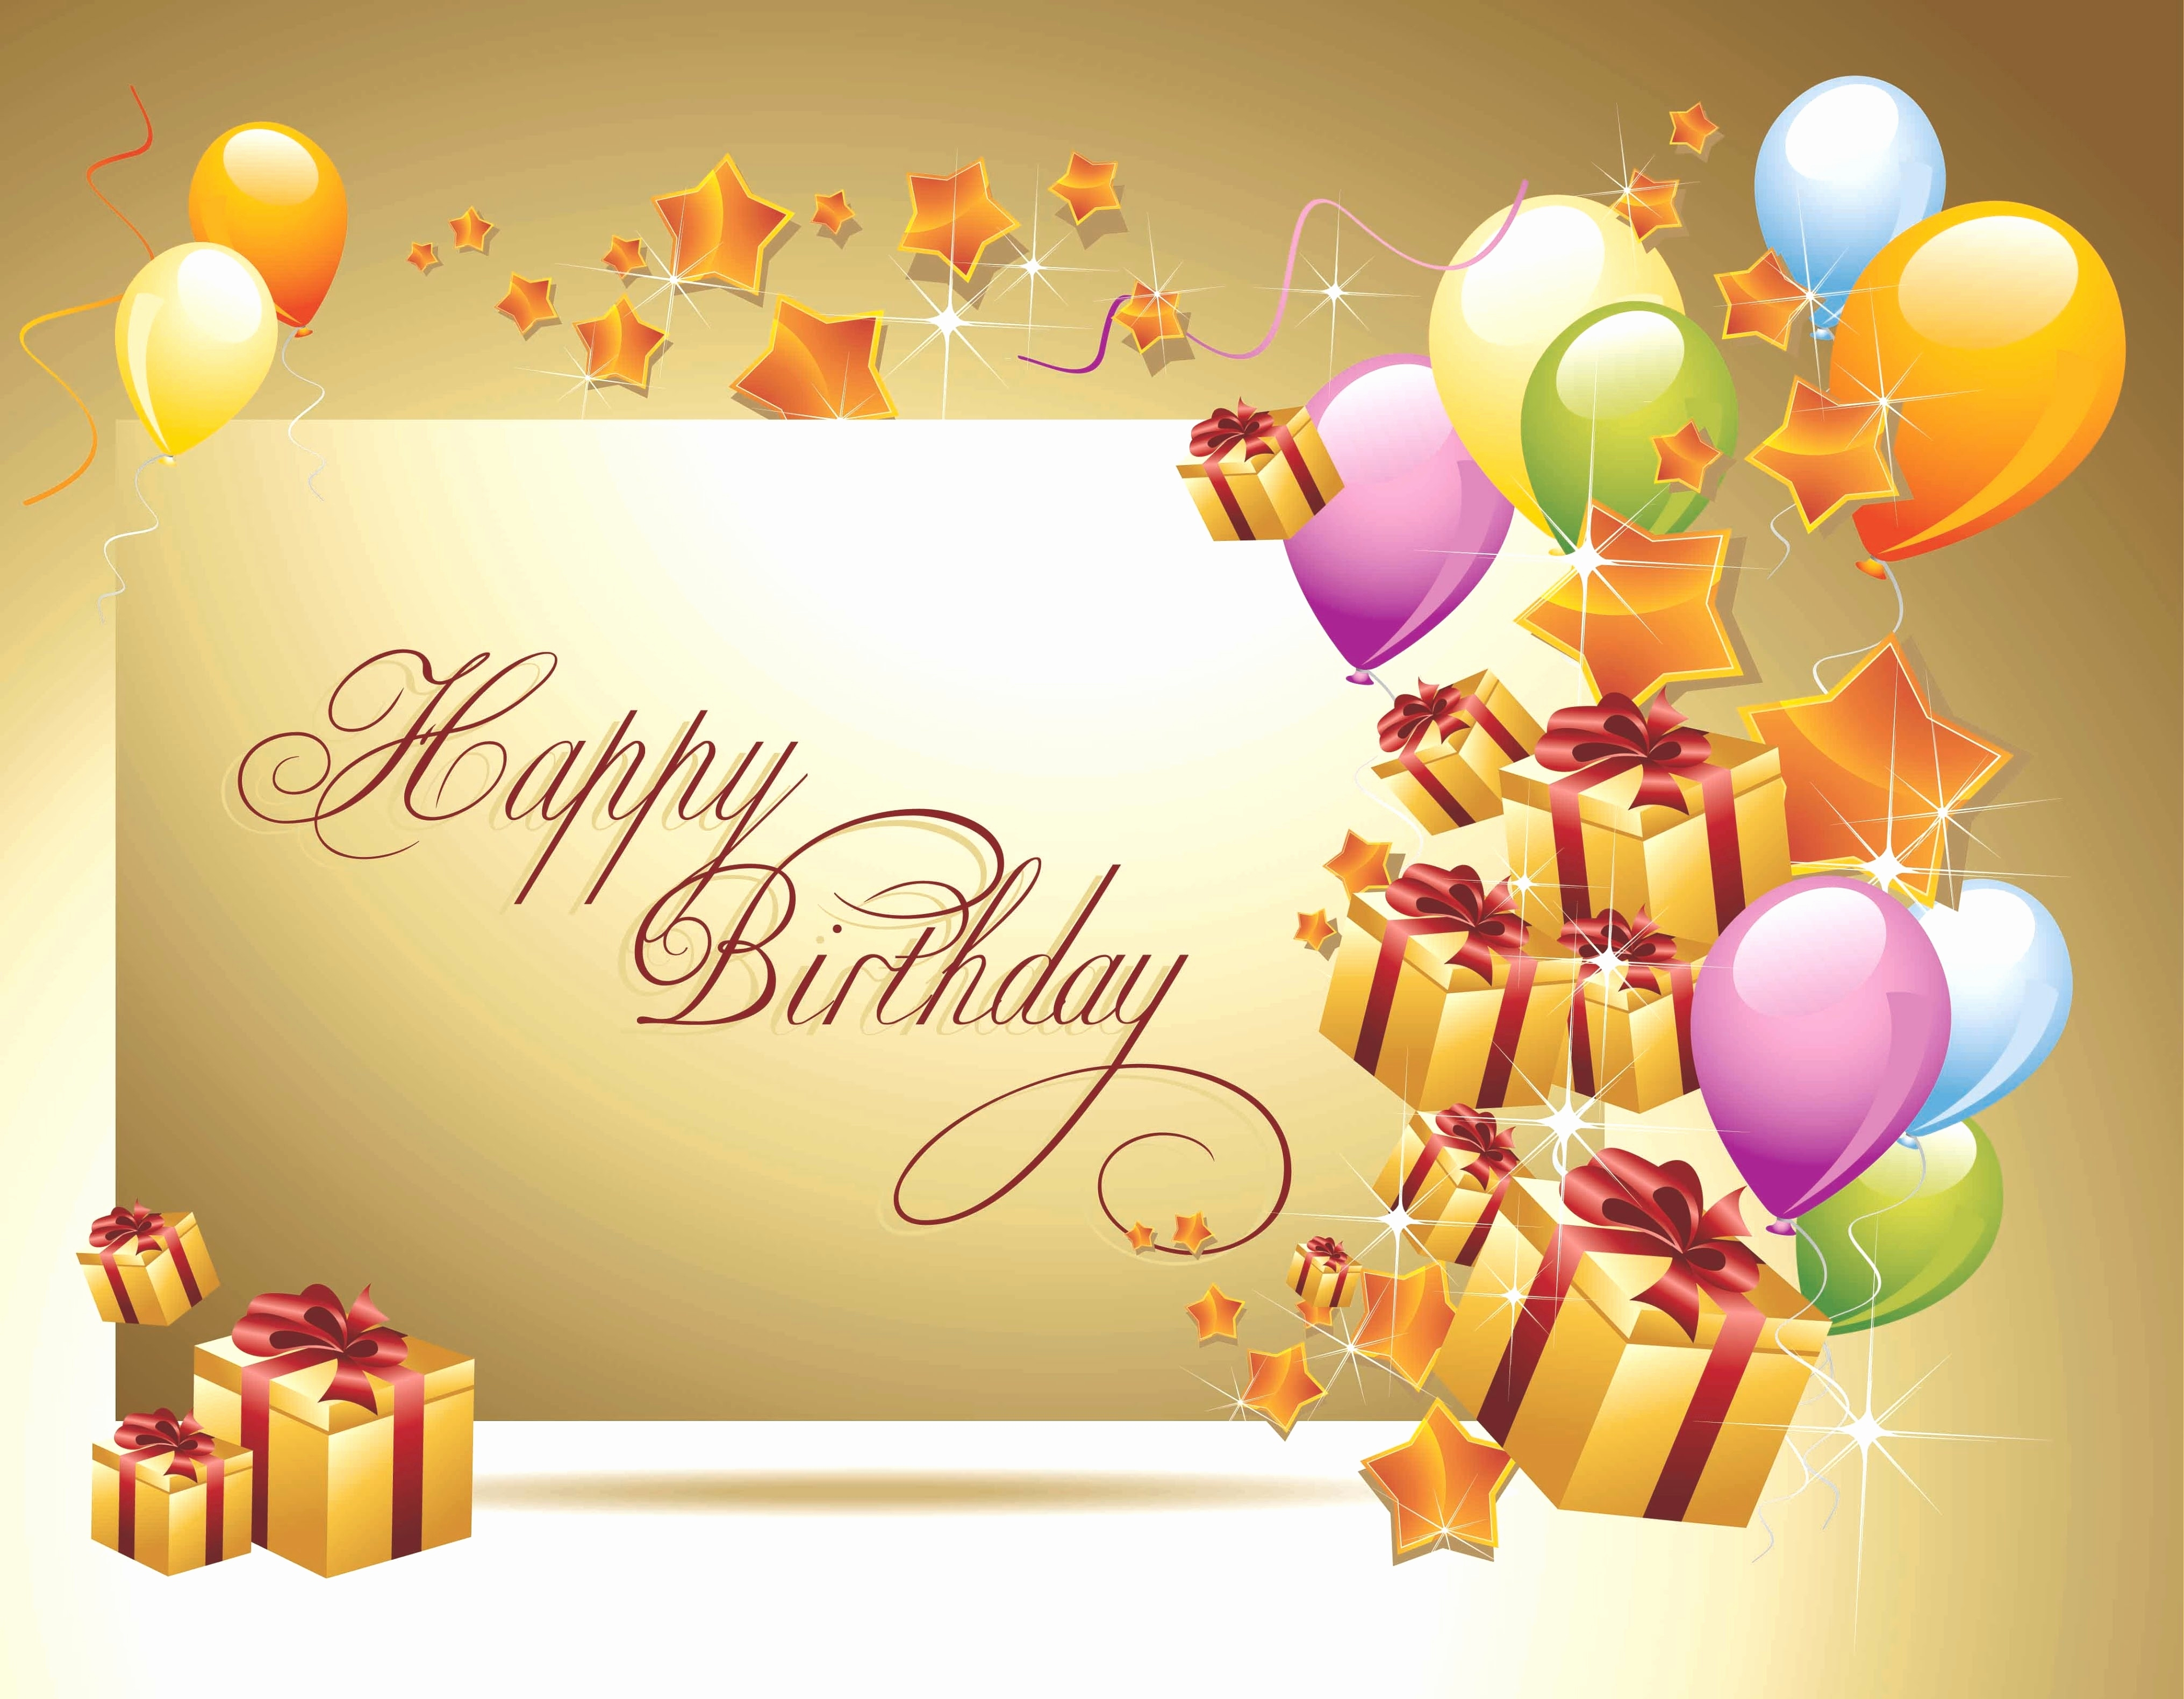 happy birthday and wish you all the best ; happy-birthday-all-best-wishes-best-of-50-elegant-gallery-happy-birthday-wishing-you-all-the-best-of-happy-birthday-all-best-wishes